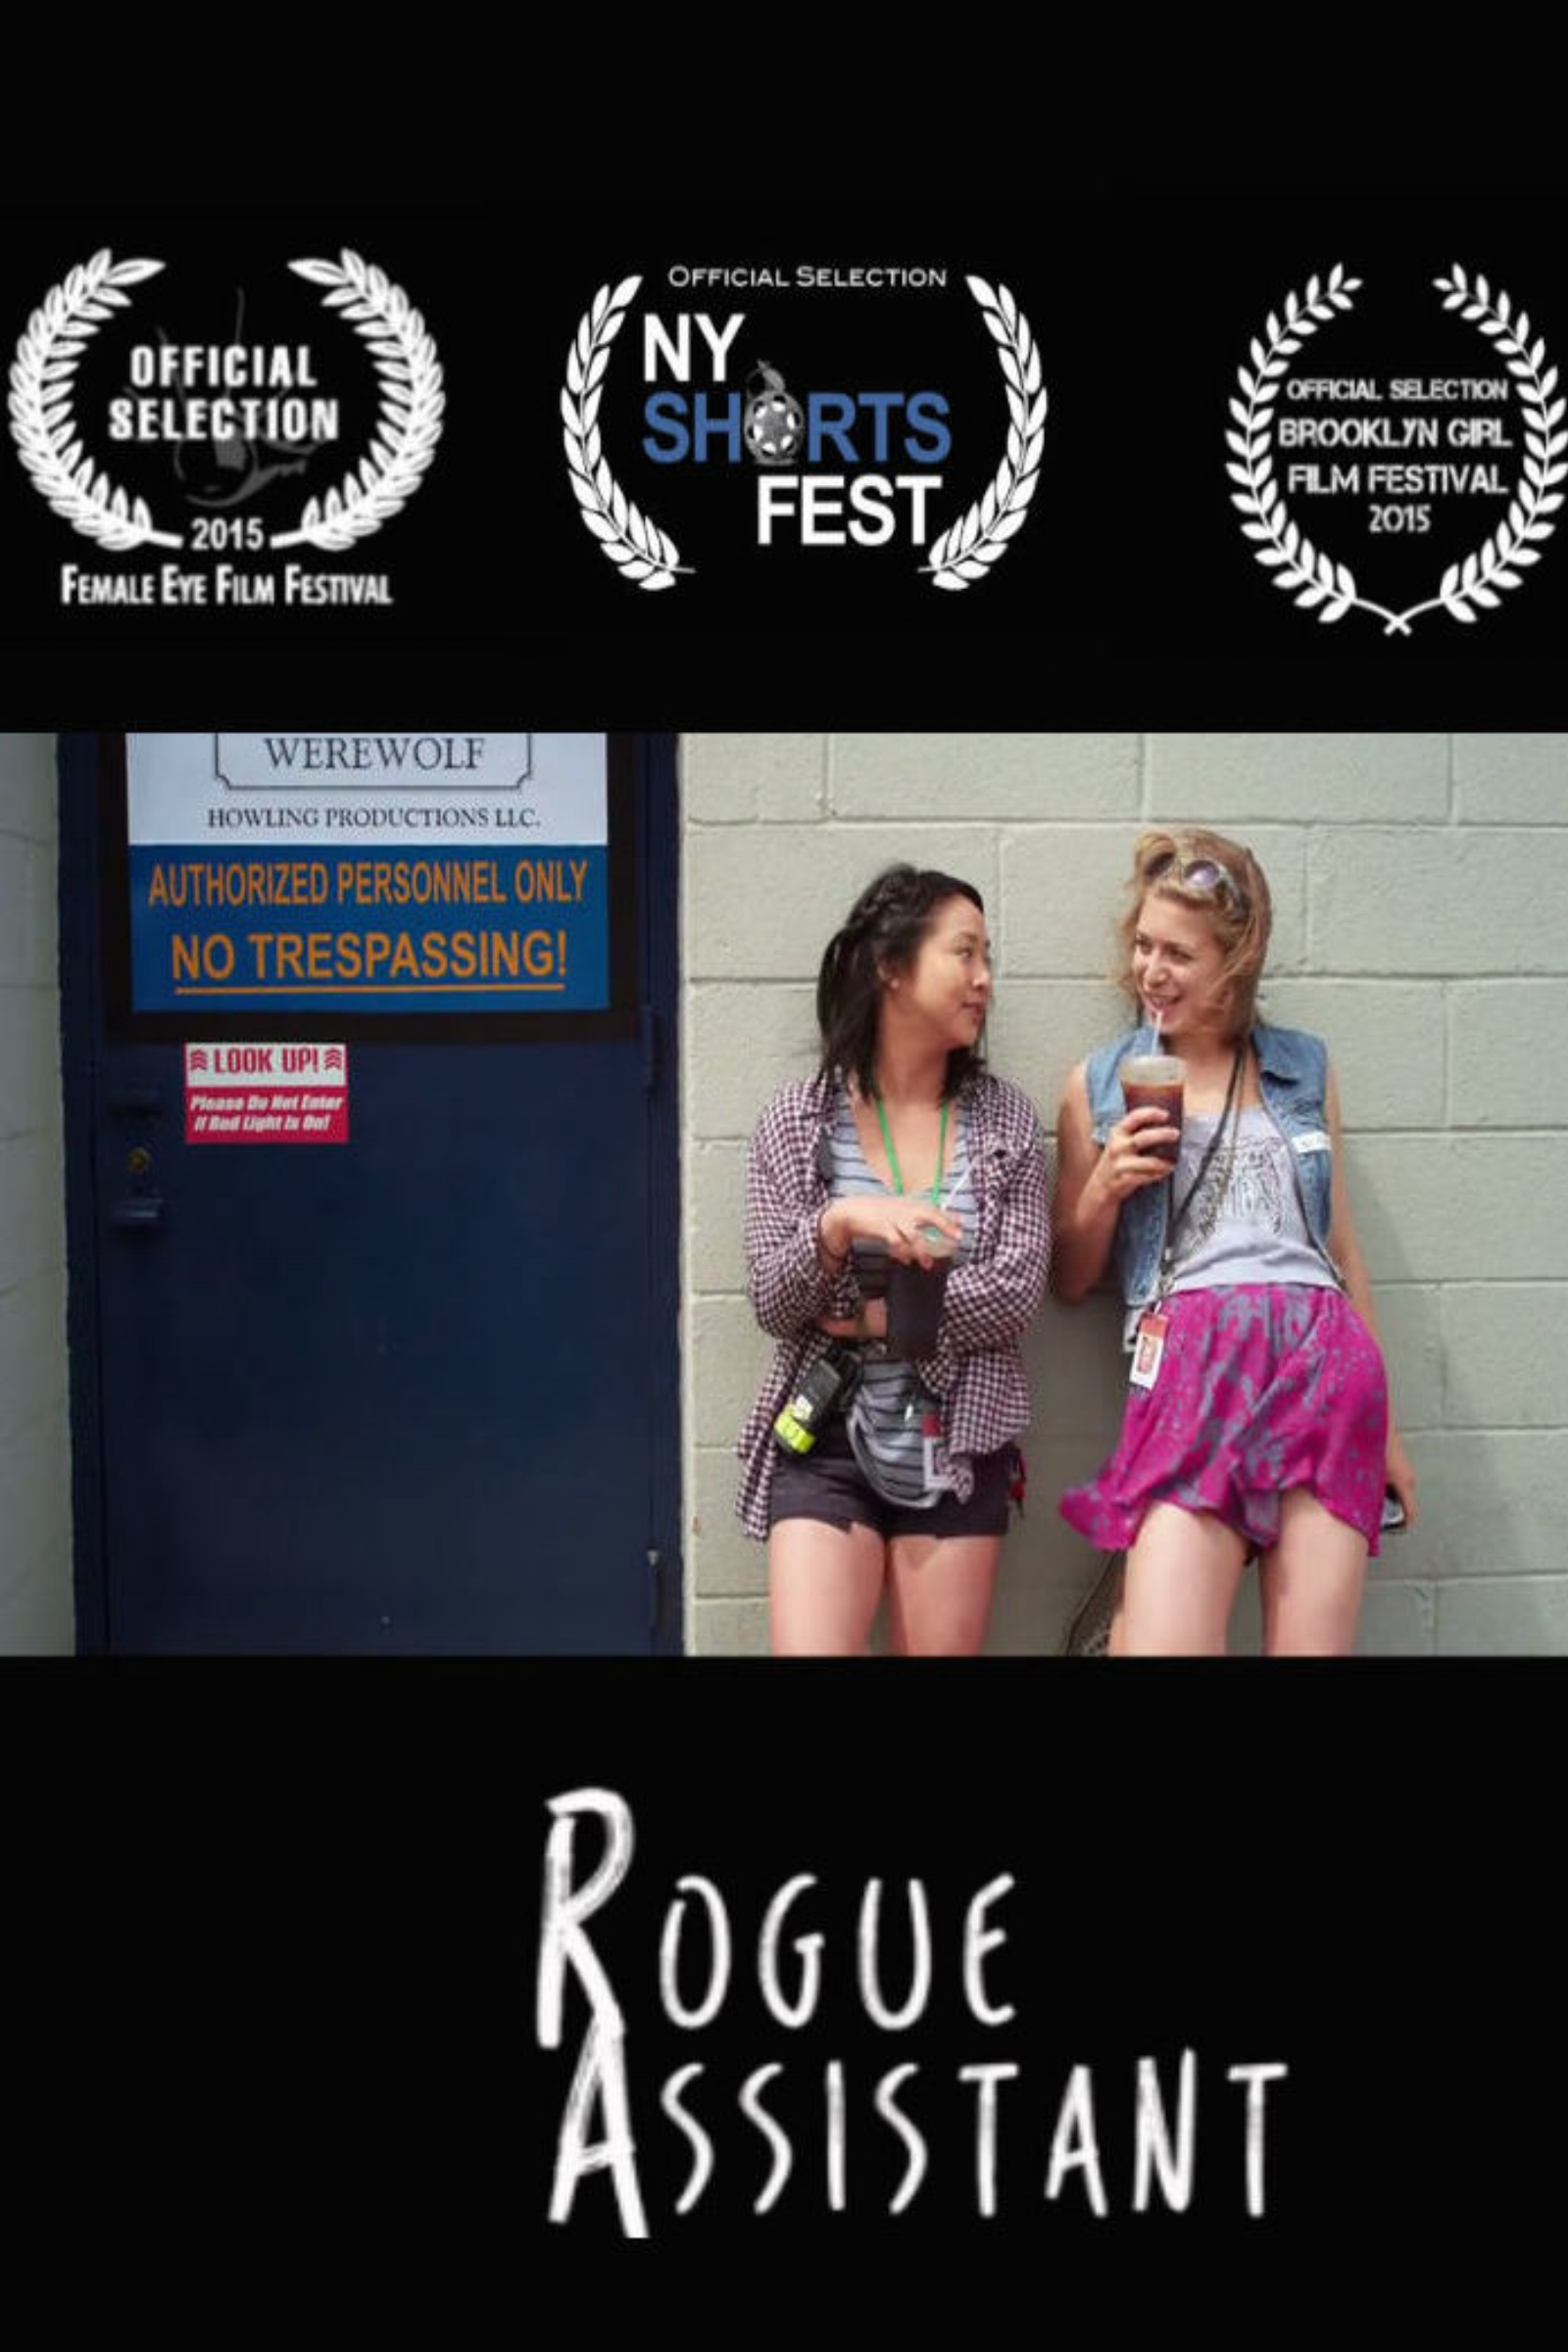 Rogue Assistant (2015) - Juliet Warren